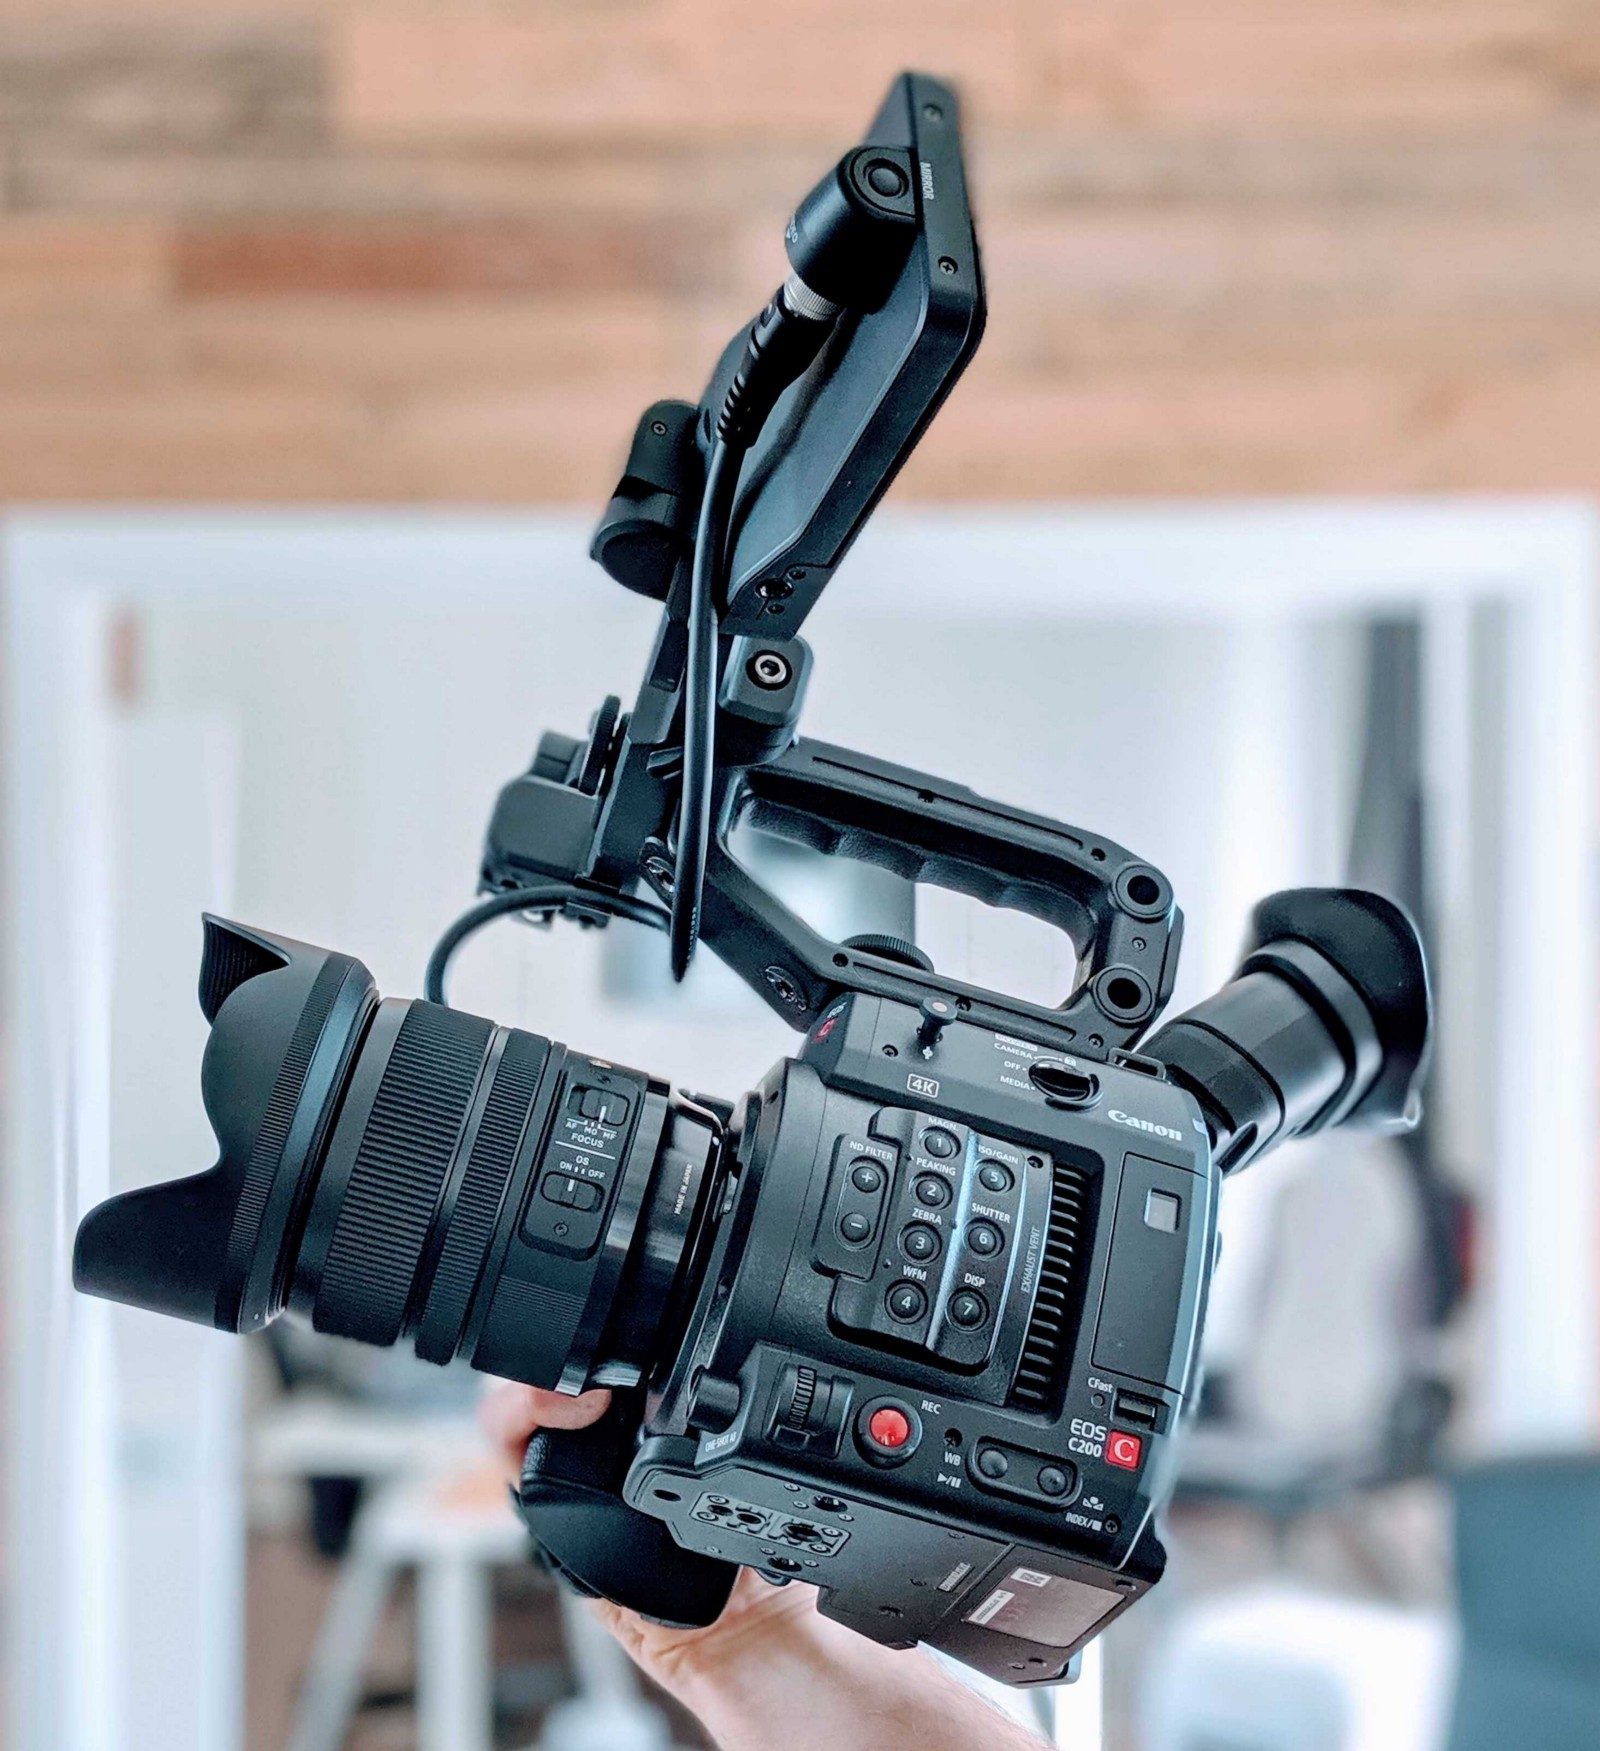 The Canon C200: Why did we just buy one and abandon 7 years